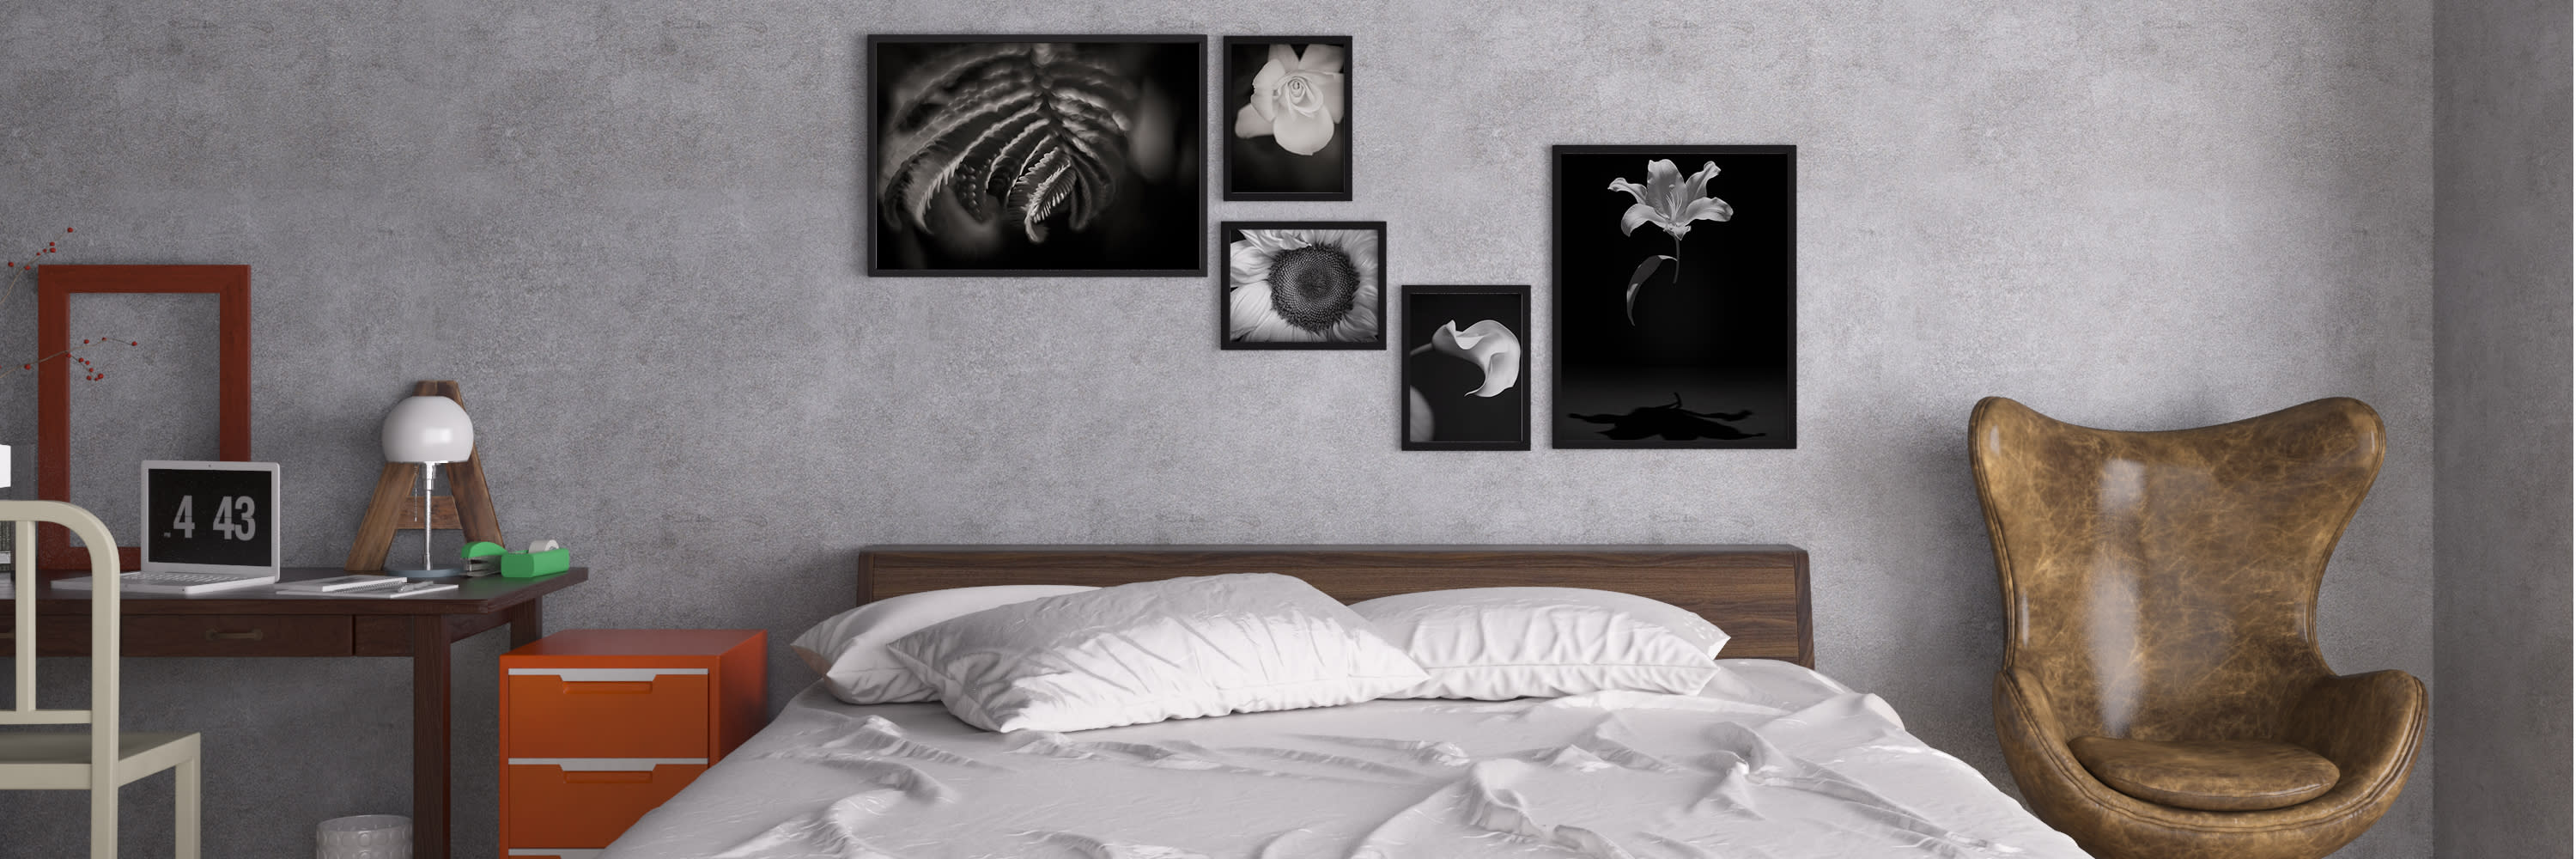 <div class='title'>           Flower Grouping Over Bed 3 1         </div>